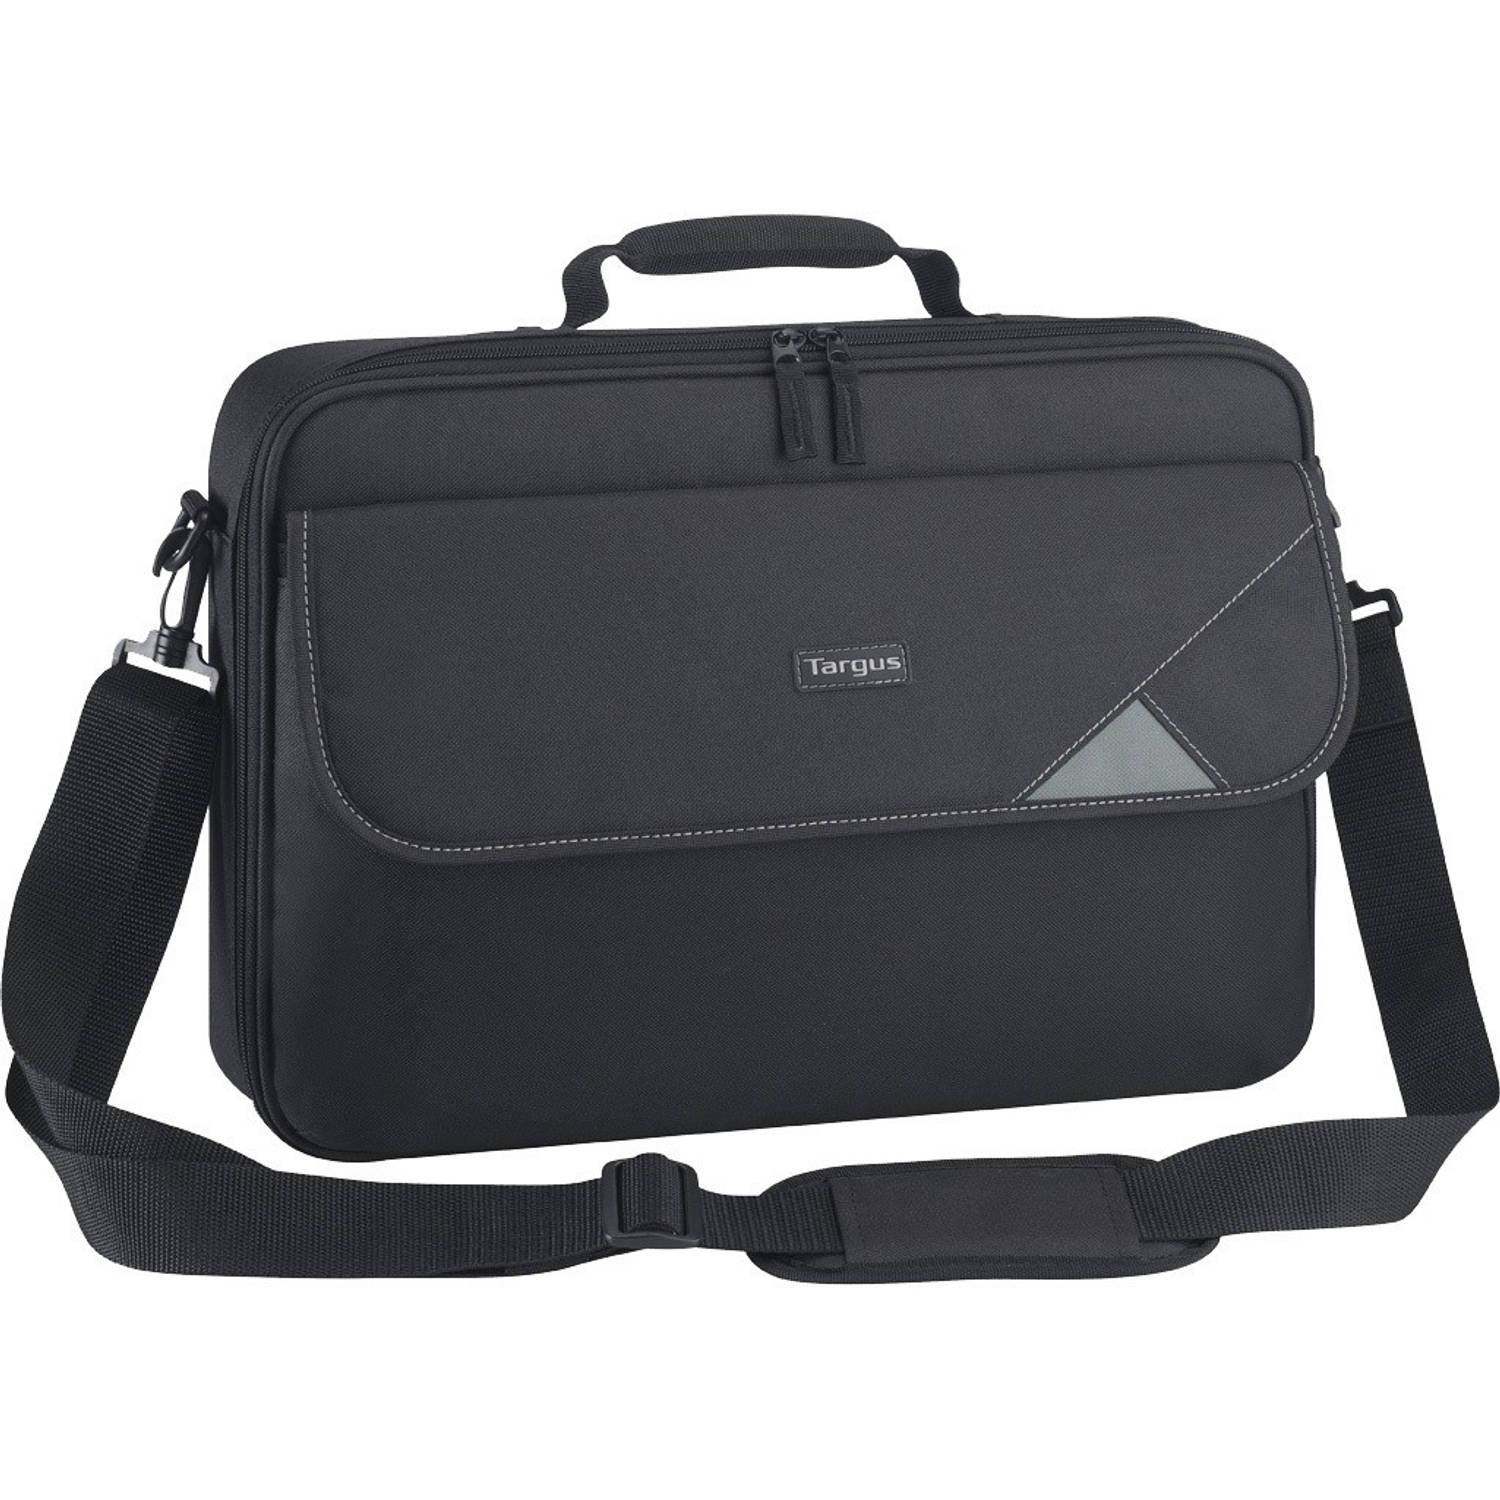 Intellect 16 Clamshell Case